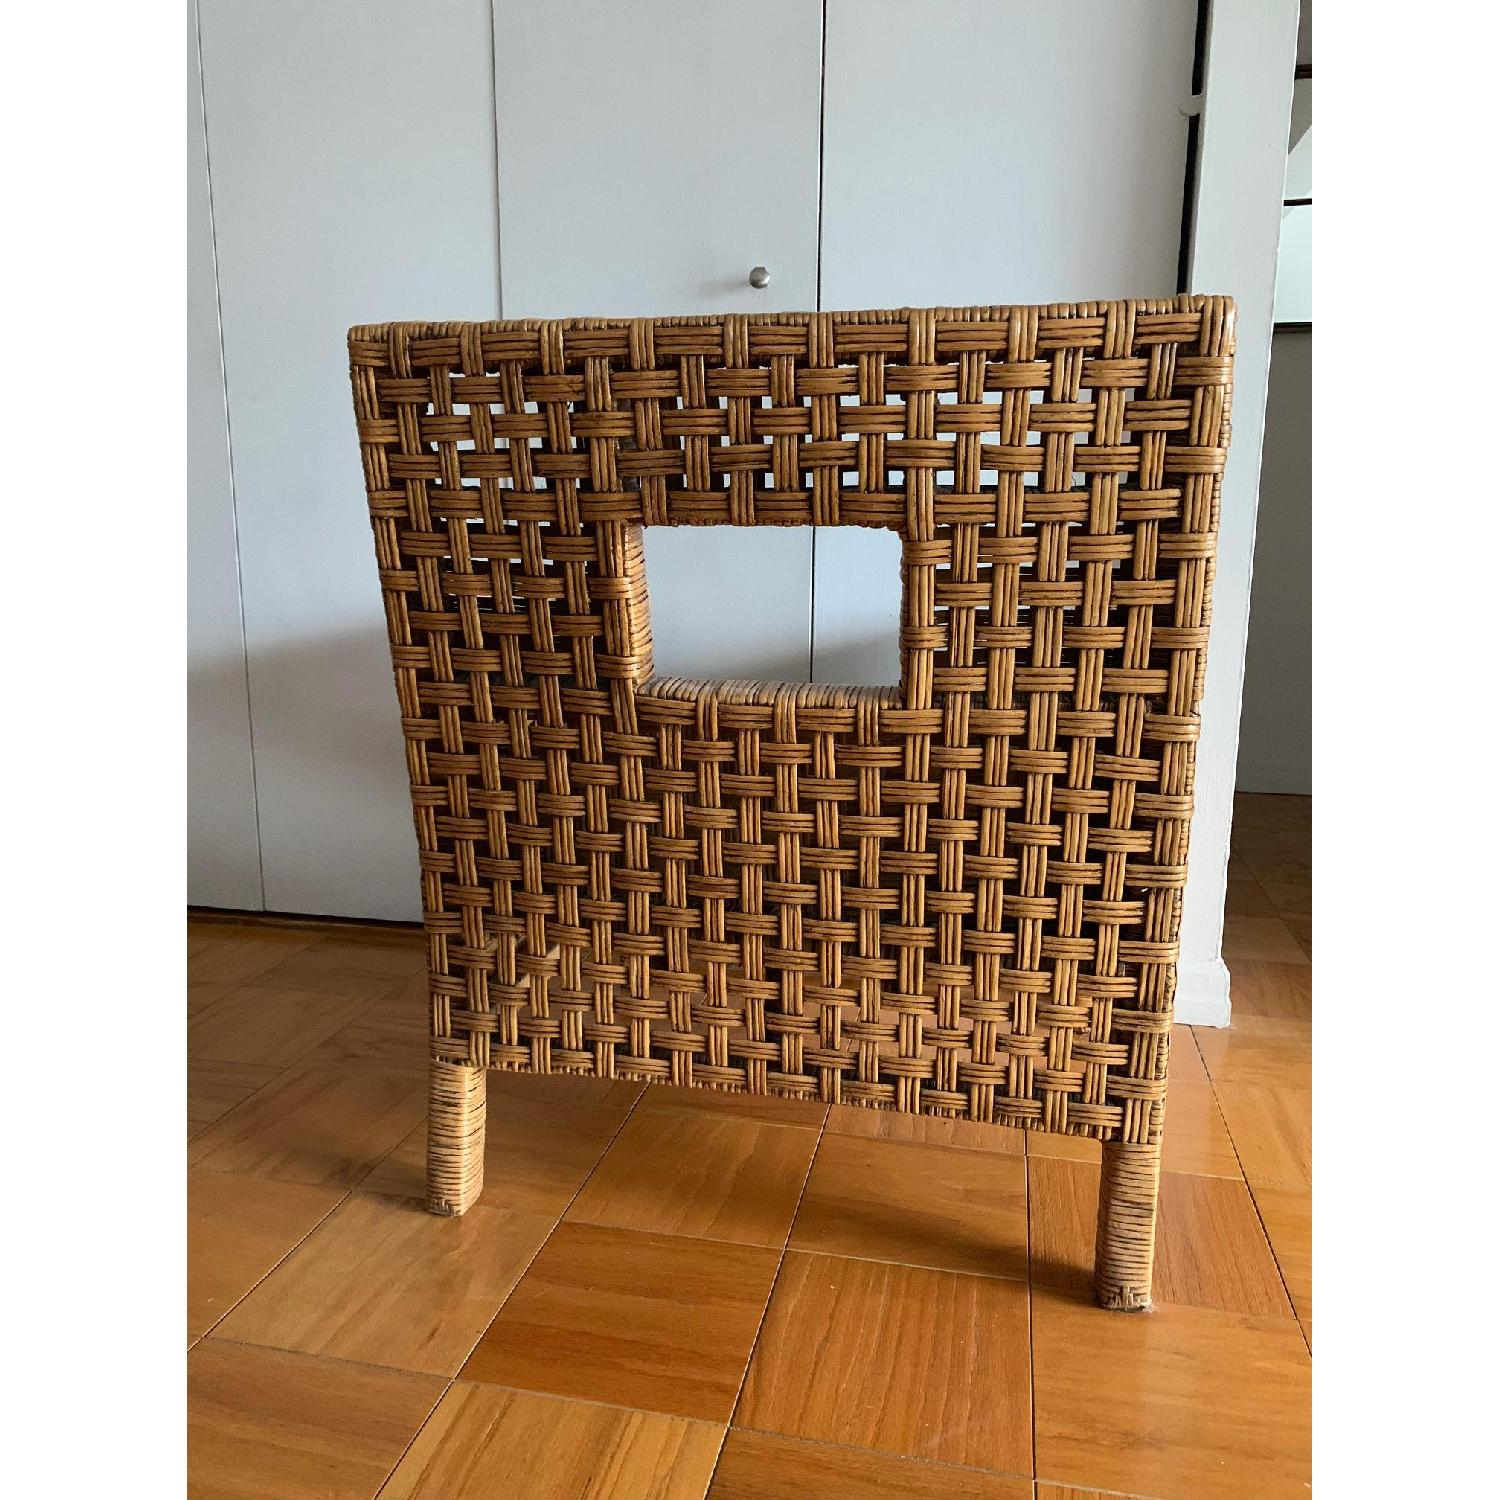 Pier 1 Wicker Chairs w/ Removable Cushions - image-5